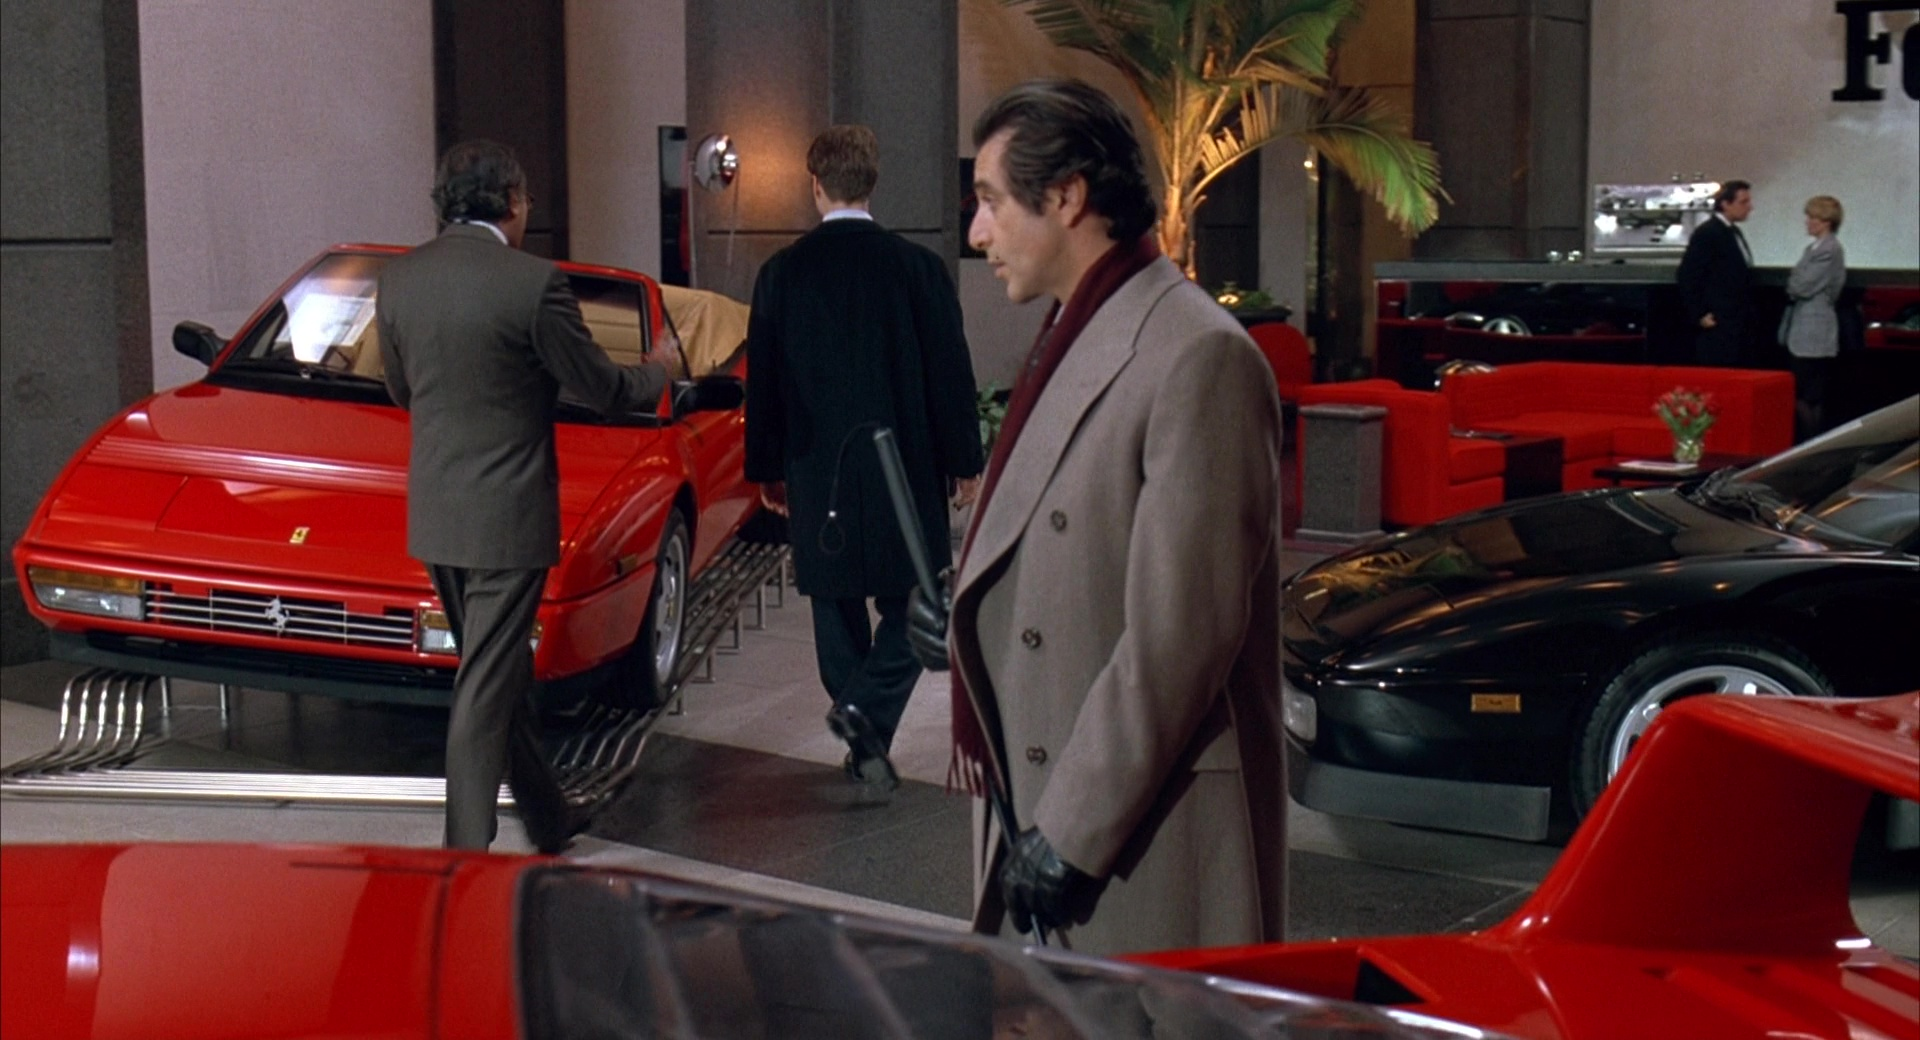 Ferrari Car Dealer Chris O Donnell And Al Pacino In Scent Of A Woman 1992 Movie Scenes